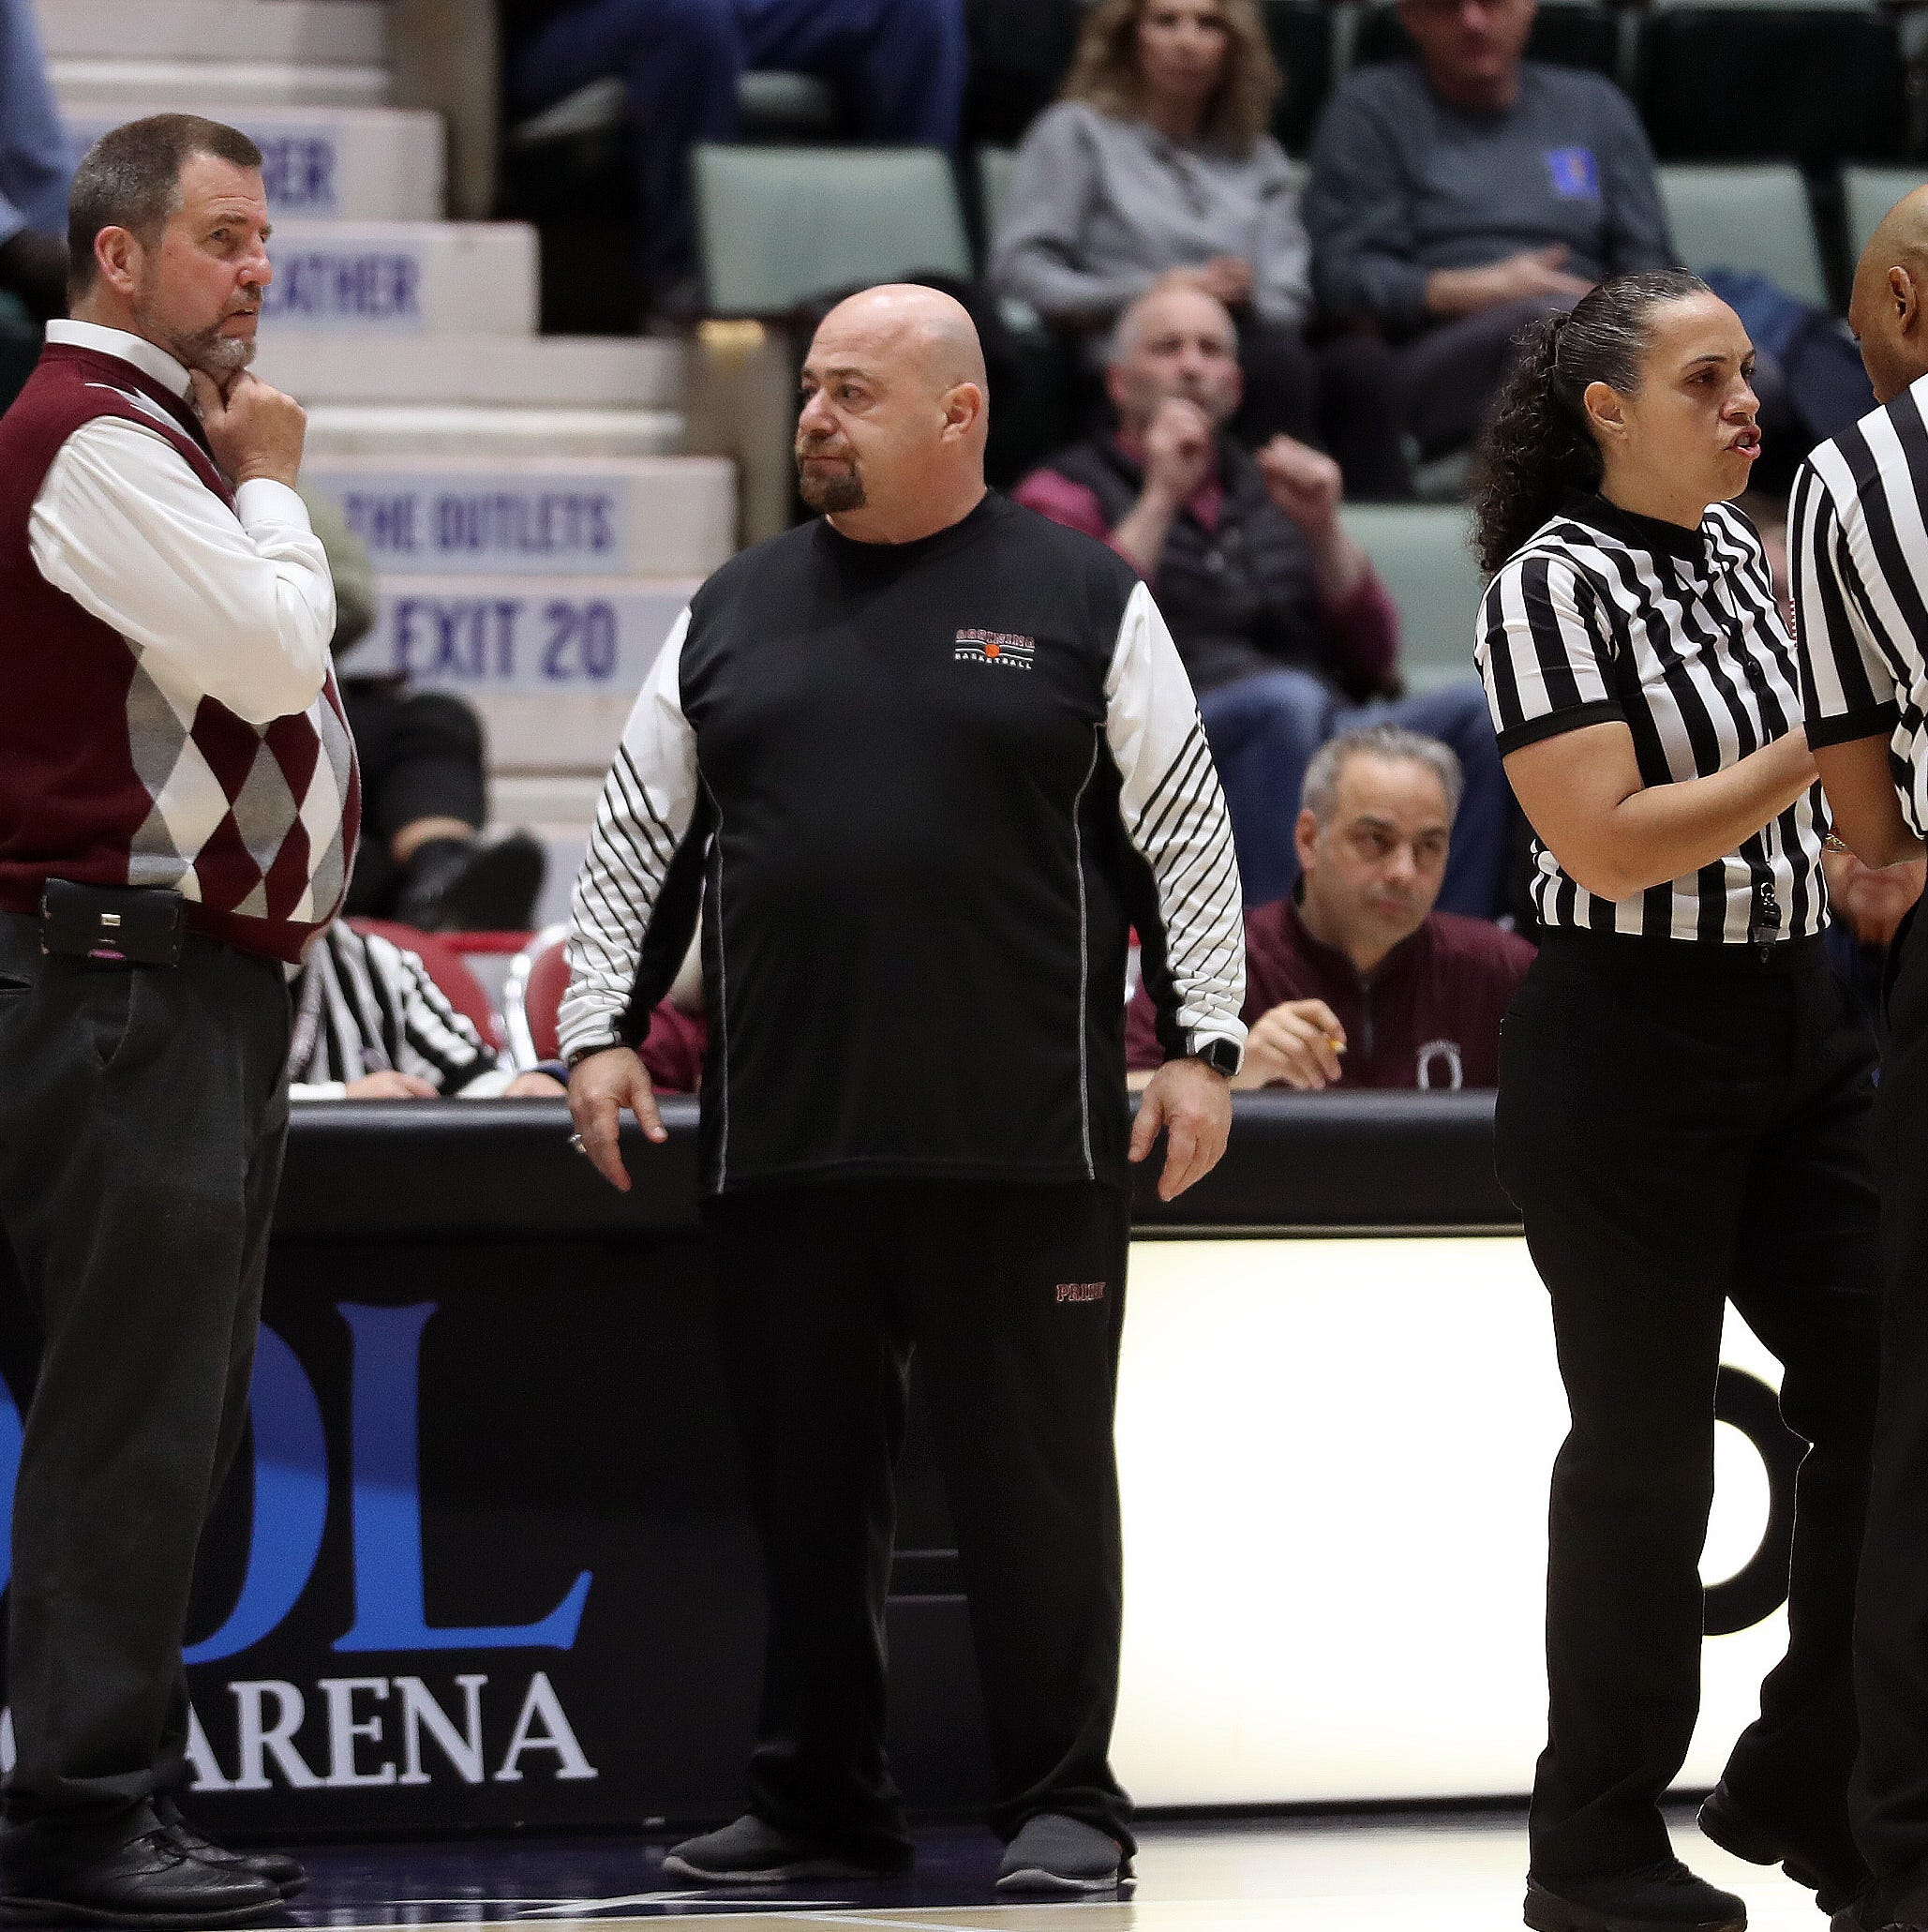 Girls basketball: NYSPHSAA to vote on switching to NFHS rules despite significant pushback